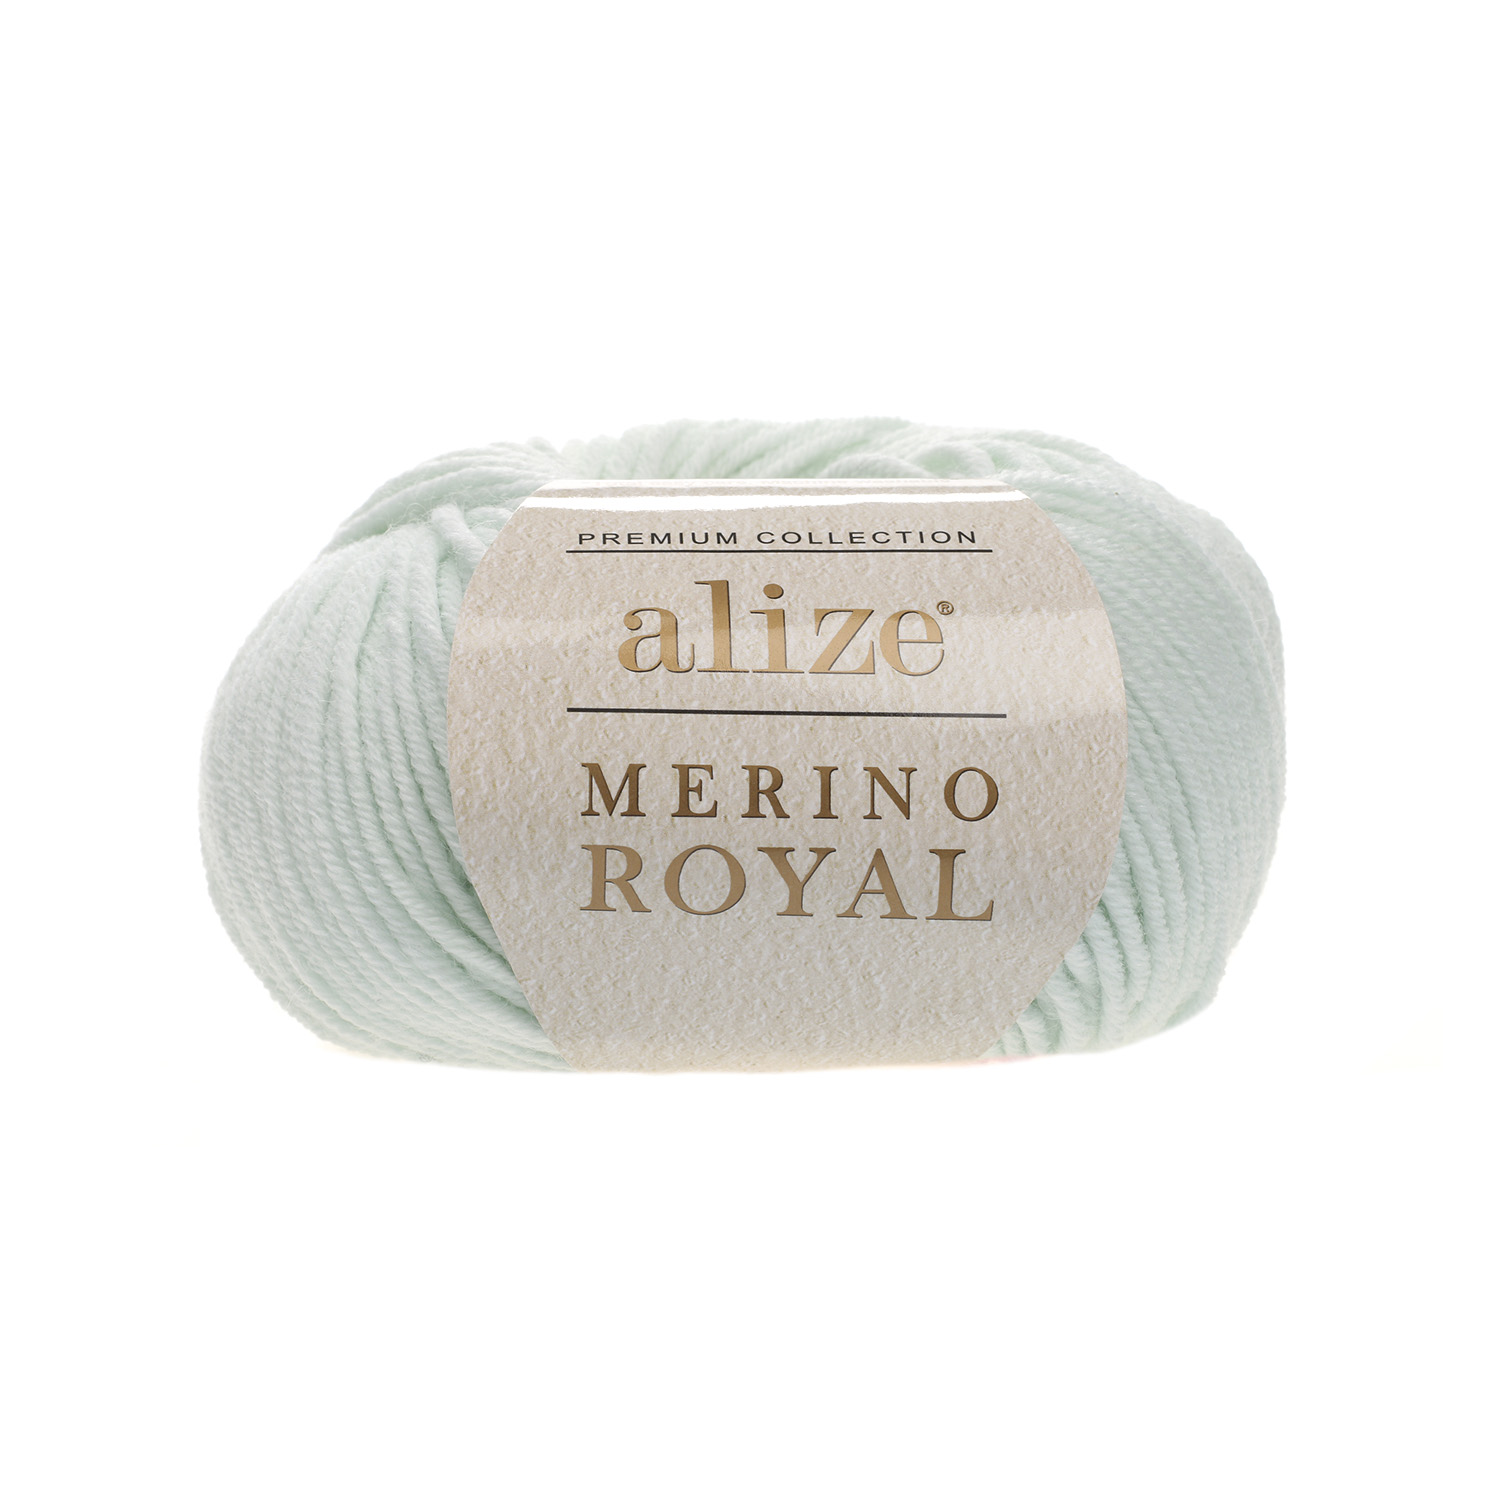 Mentolovo zelená 100% merino vlna Merino Royal 522 (Superwash)